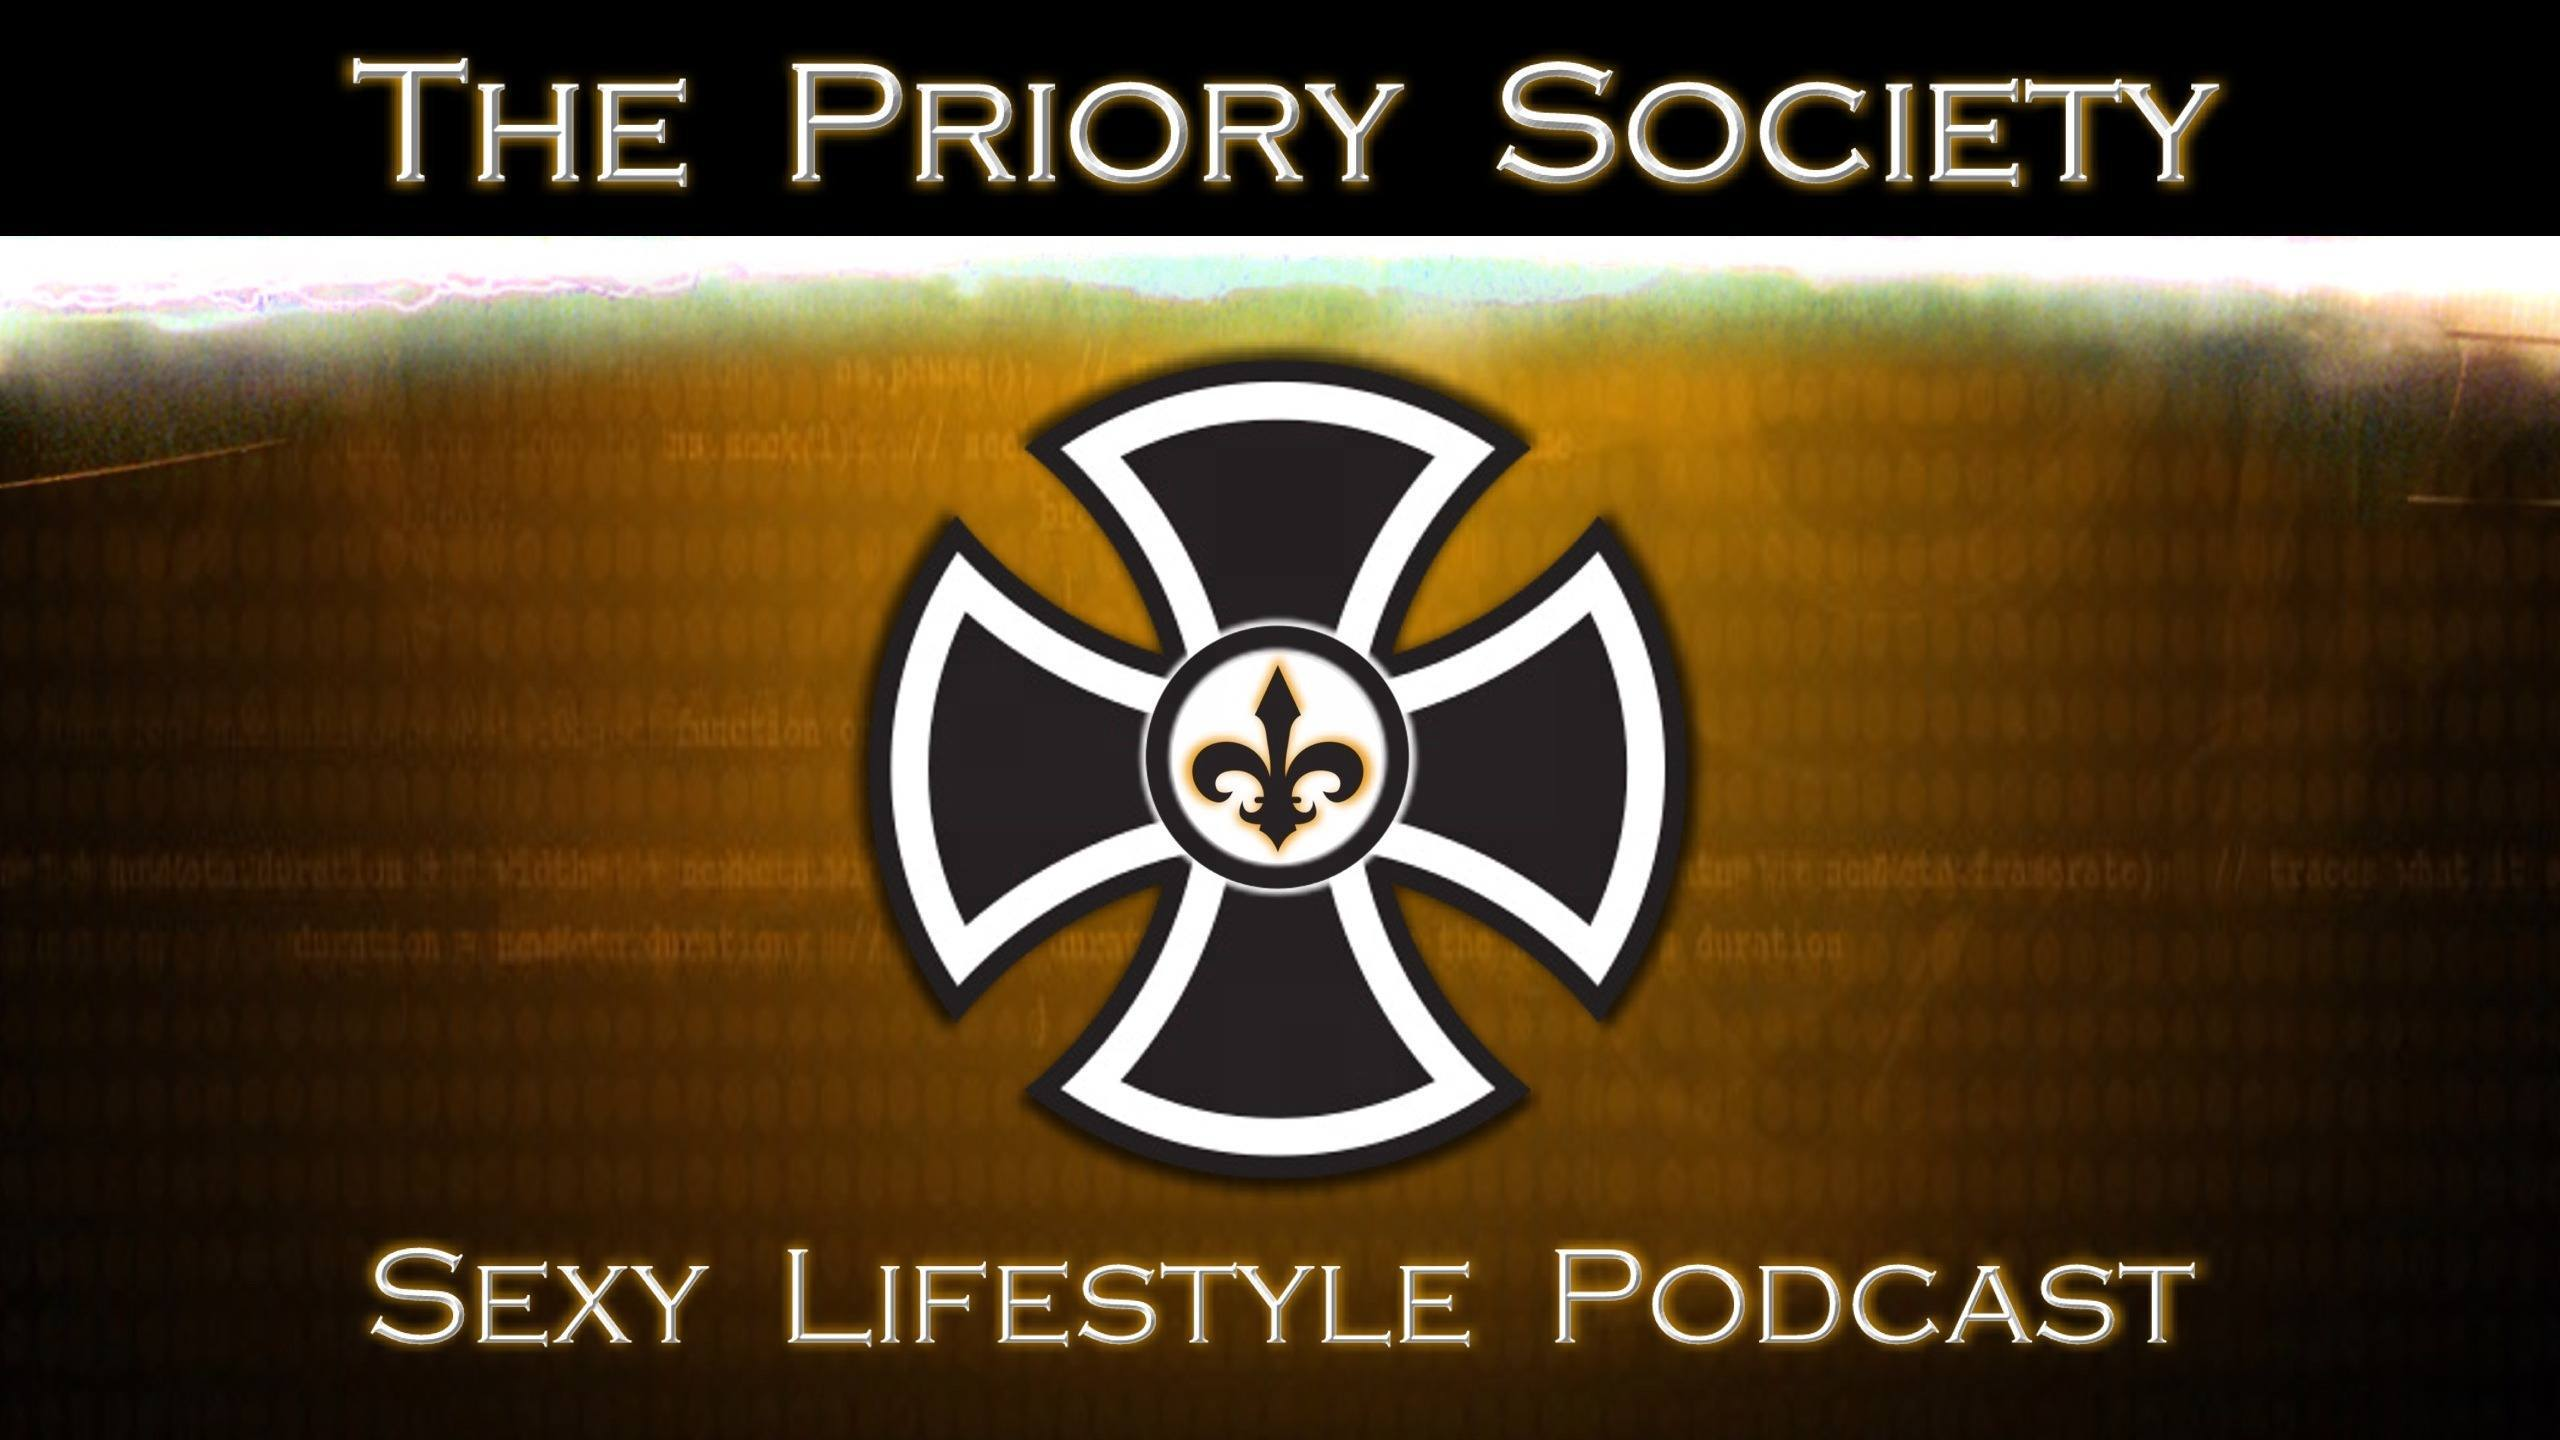 The Priory Society Desktop Image